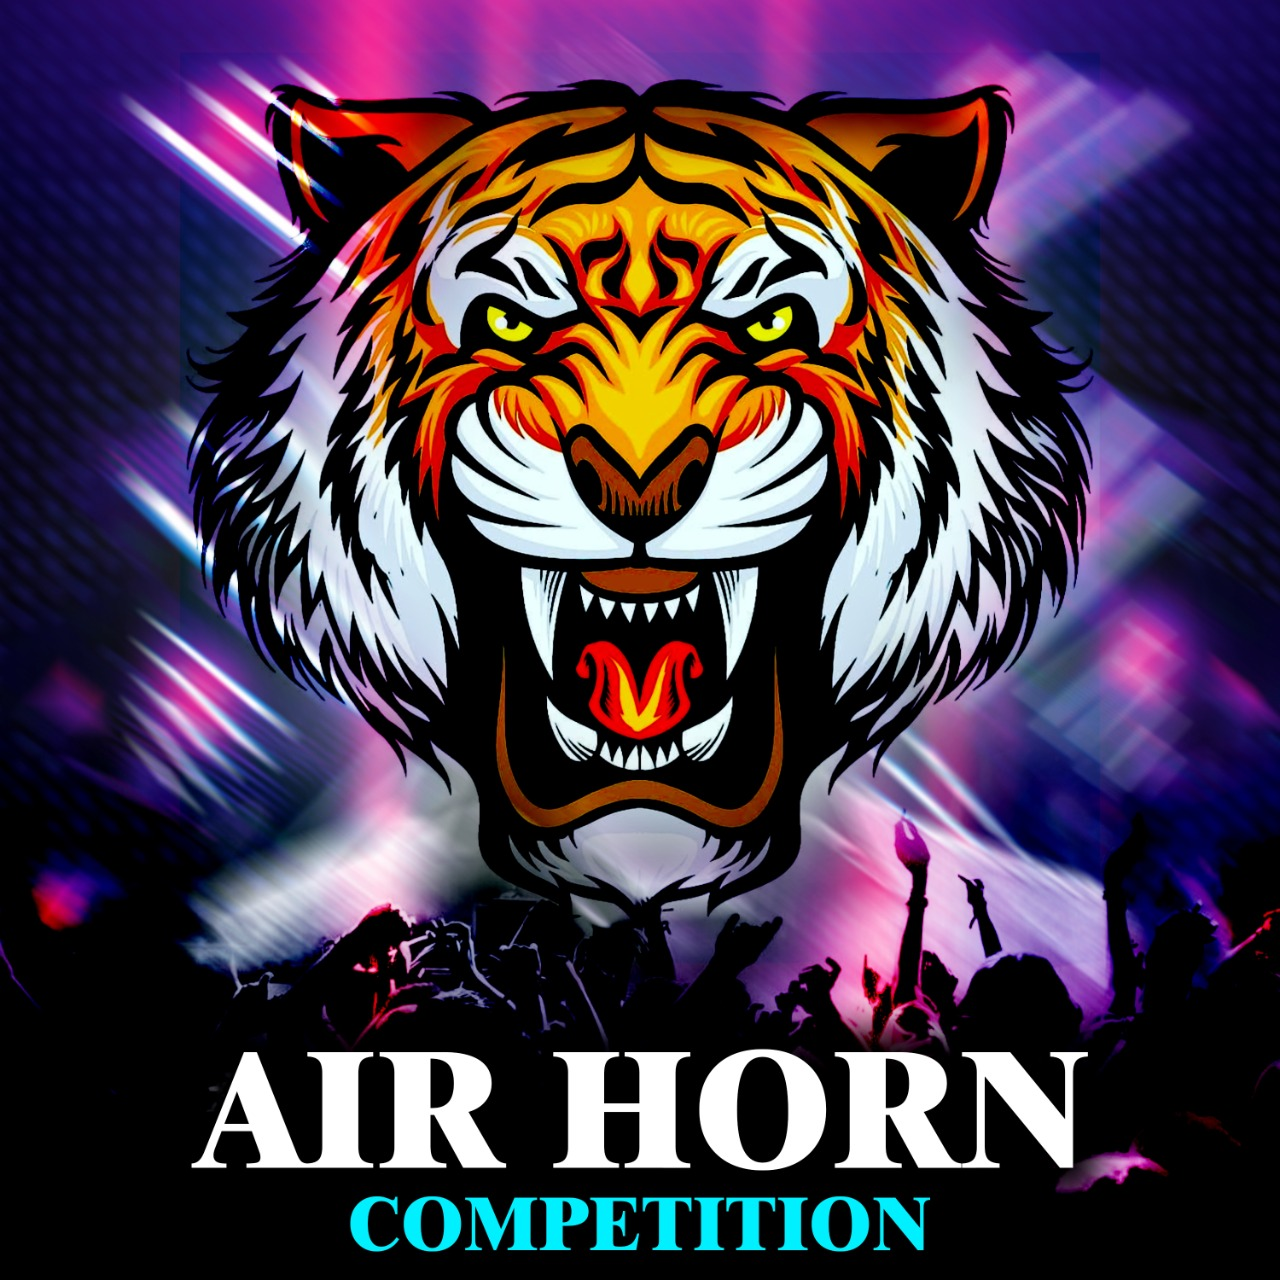 Air Horn Competition DJ Monster PS